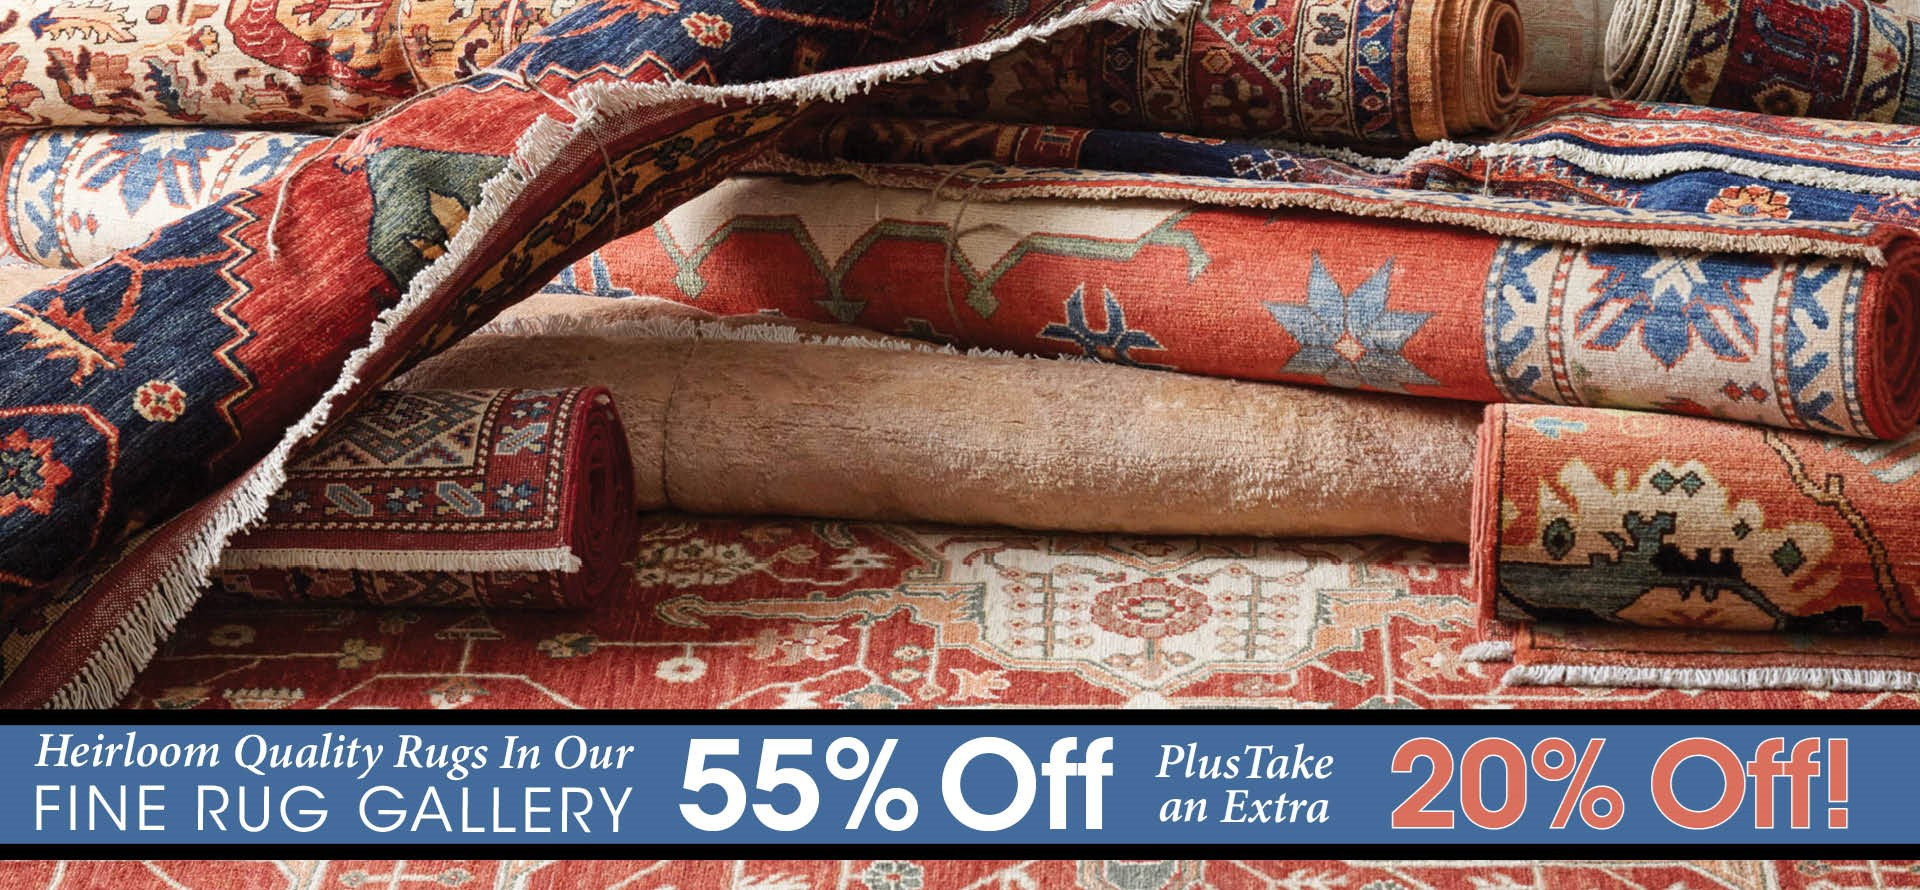 Take an Extra 20% Off in our Fine Rug Gallery